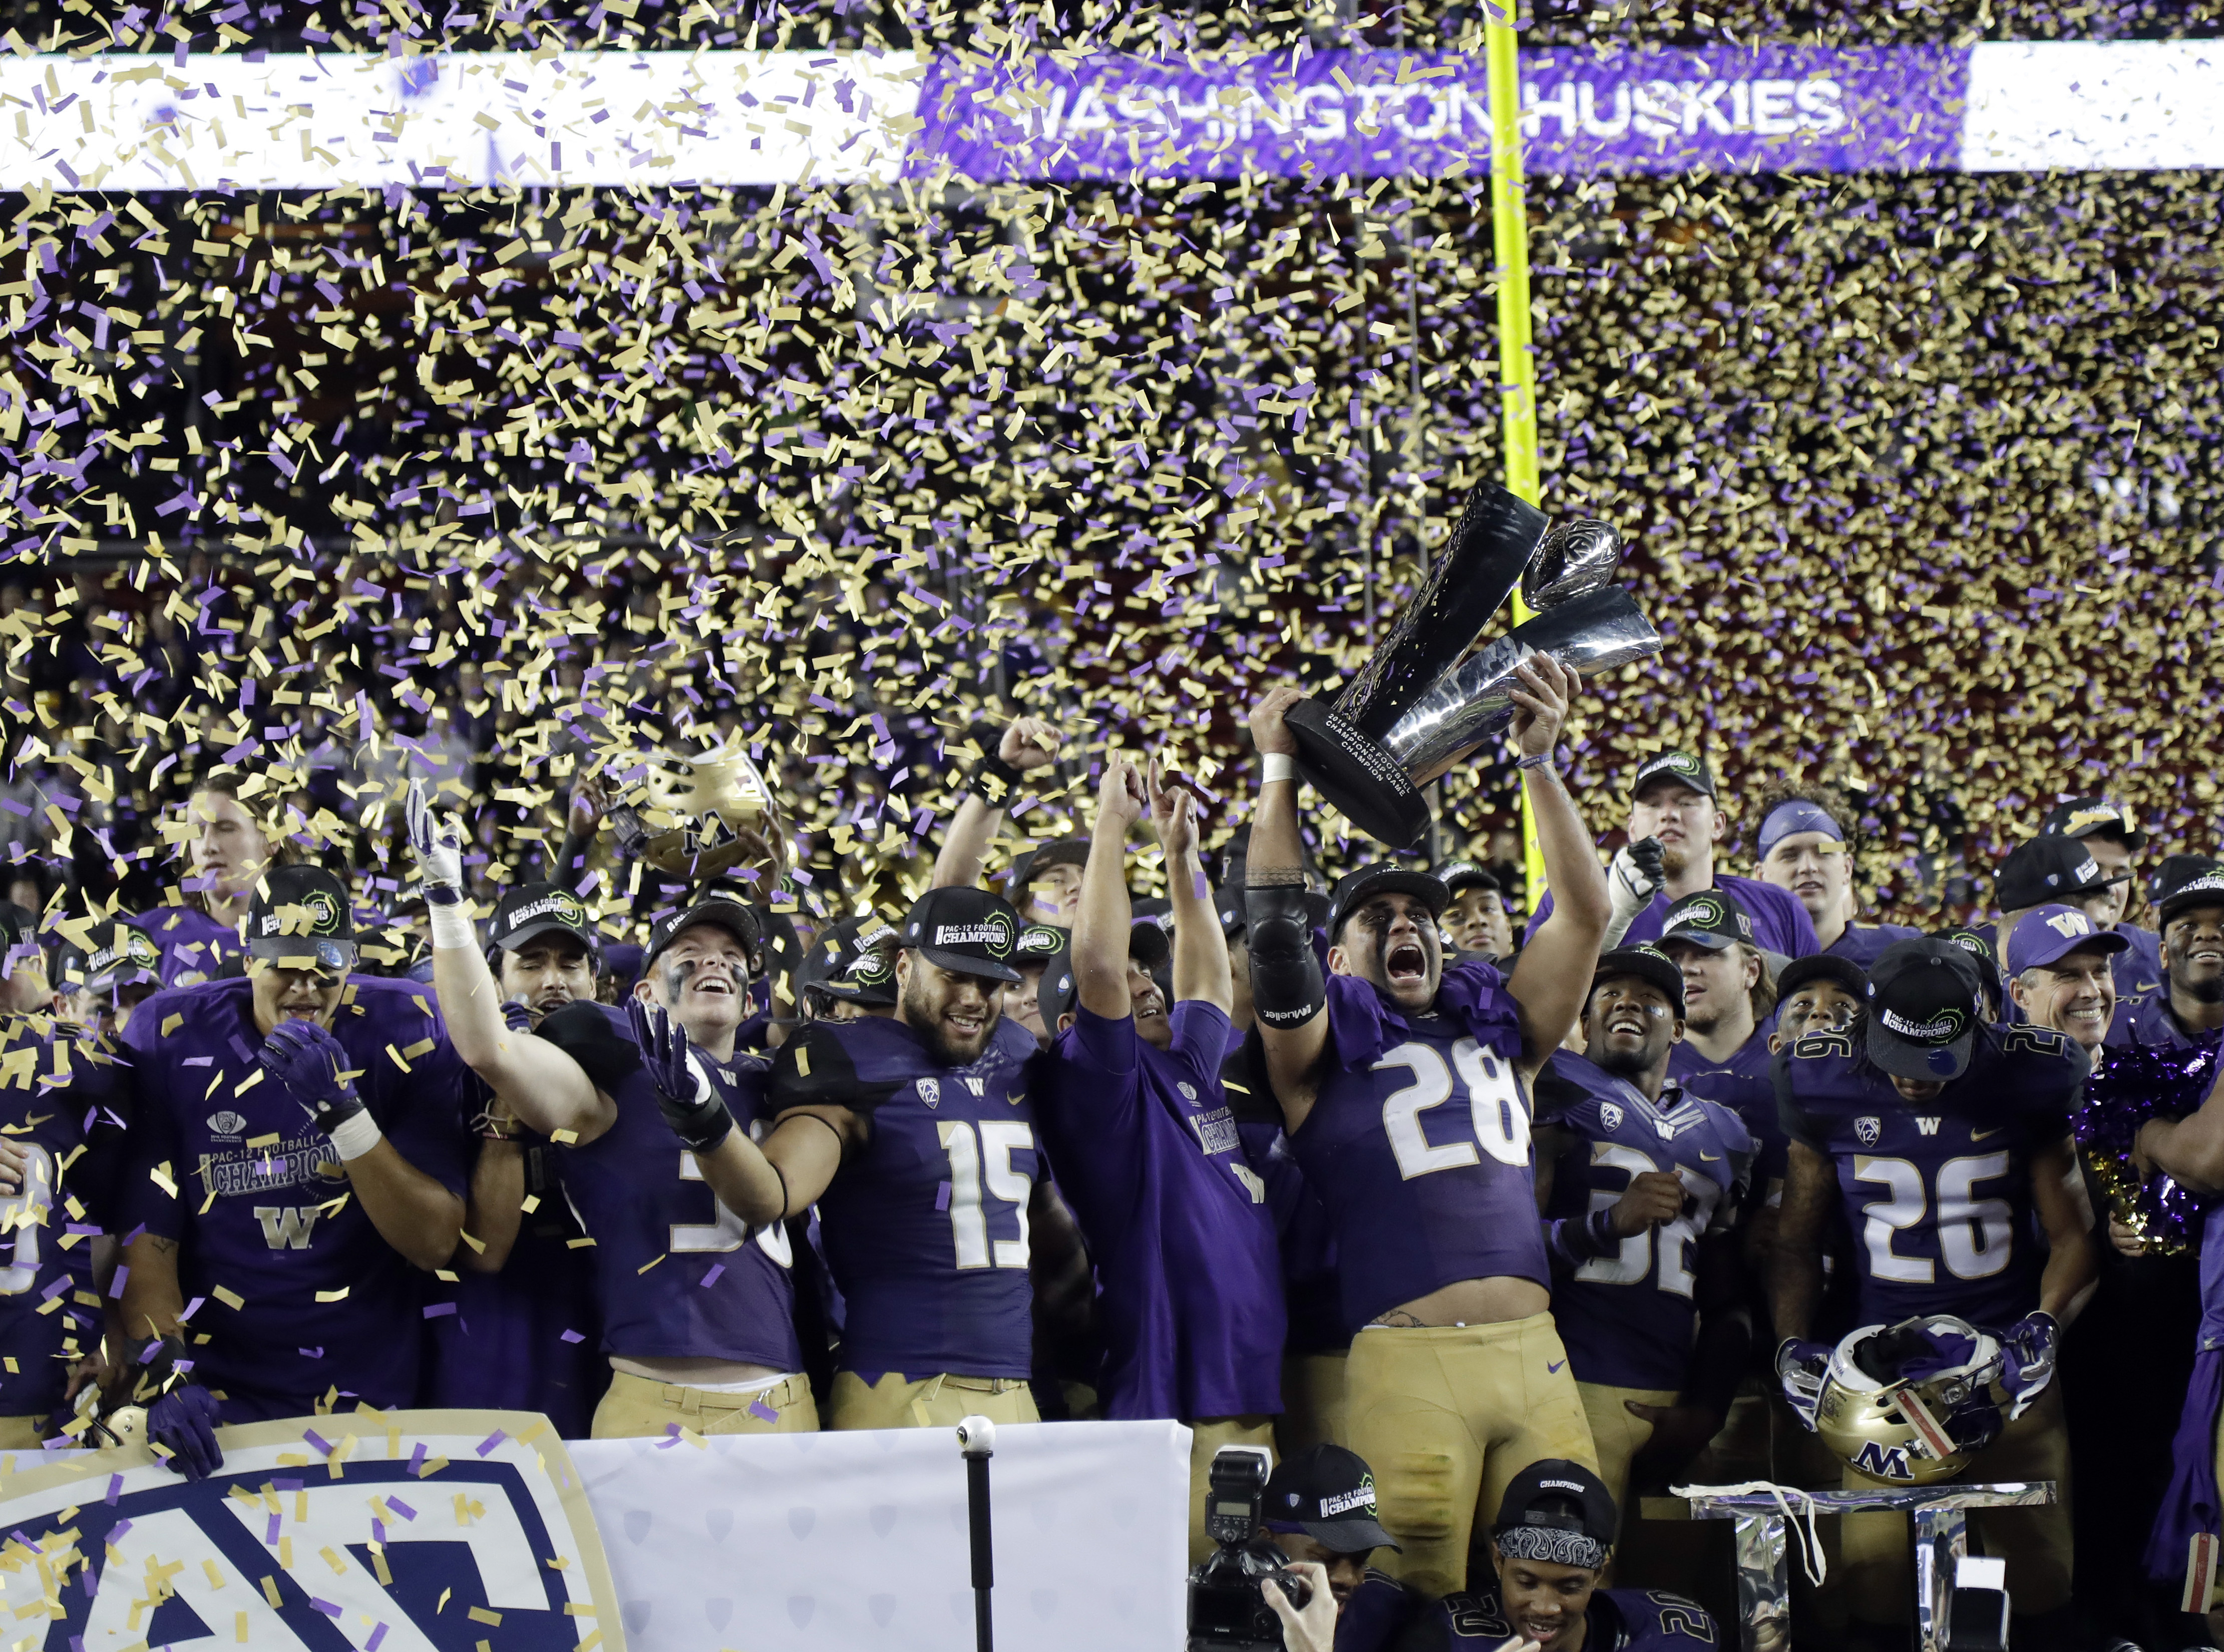 Washington players celebrate with the trophy after a 41-10 win over Colorado in the Pac-12 Conference championship NCAA college football game Friday, Dec. 2, 2016, in Santa Clara, Calif. (AP Photo/Marcio Jose Sanchez)